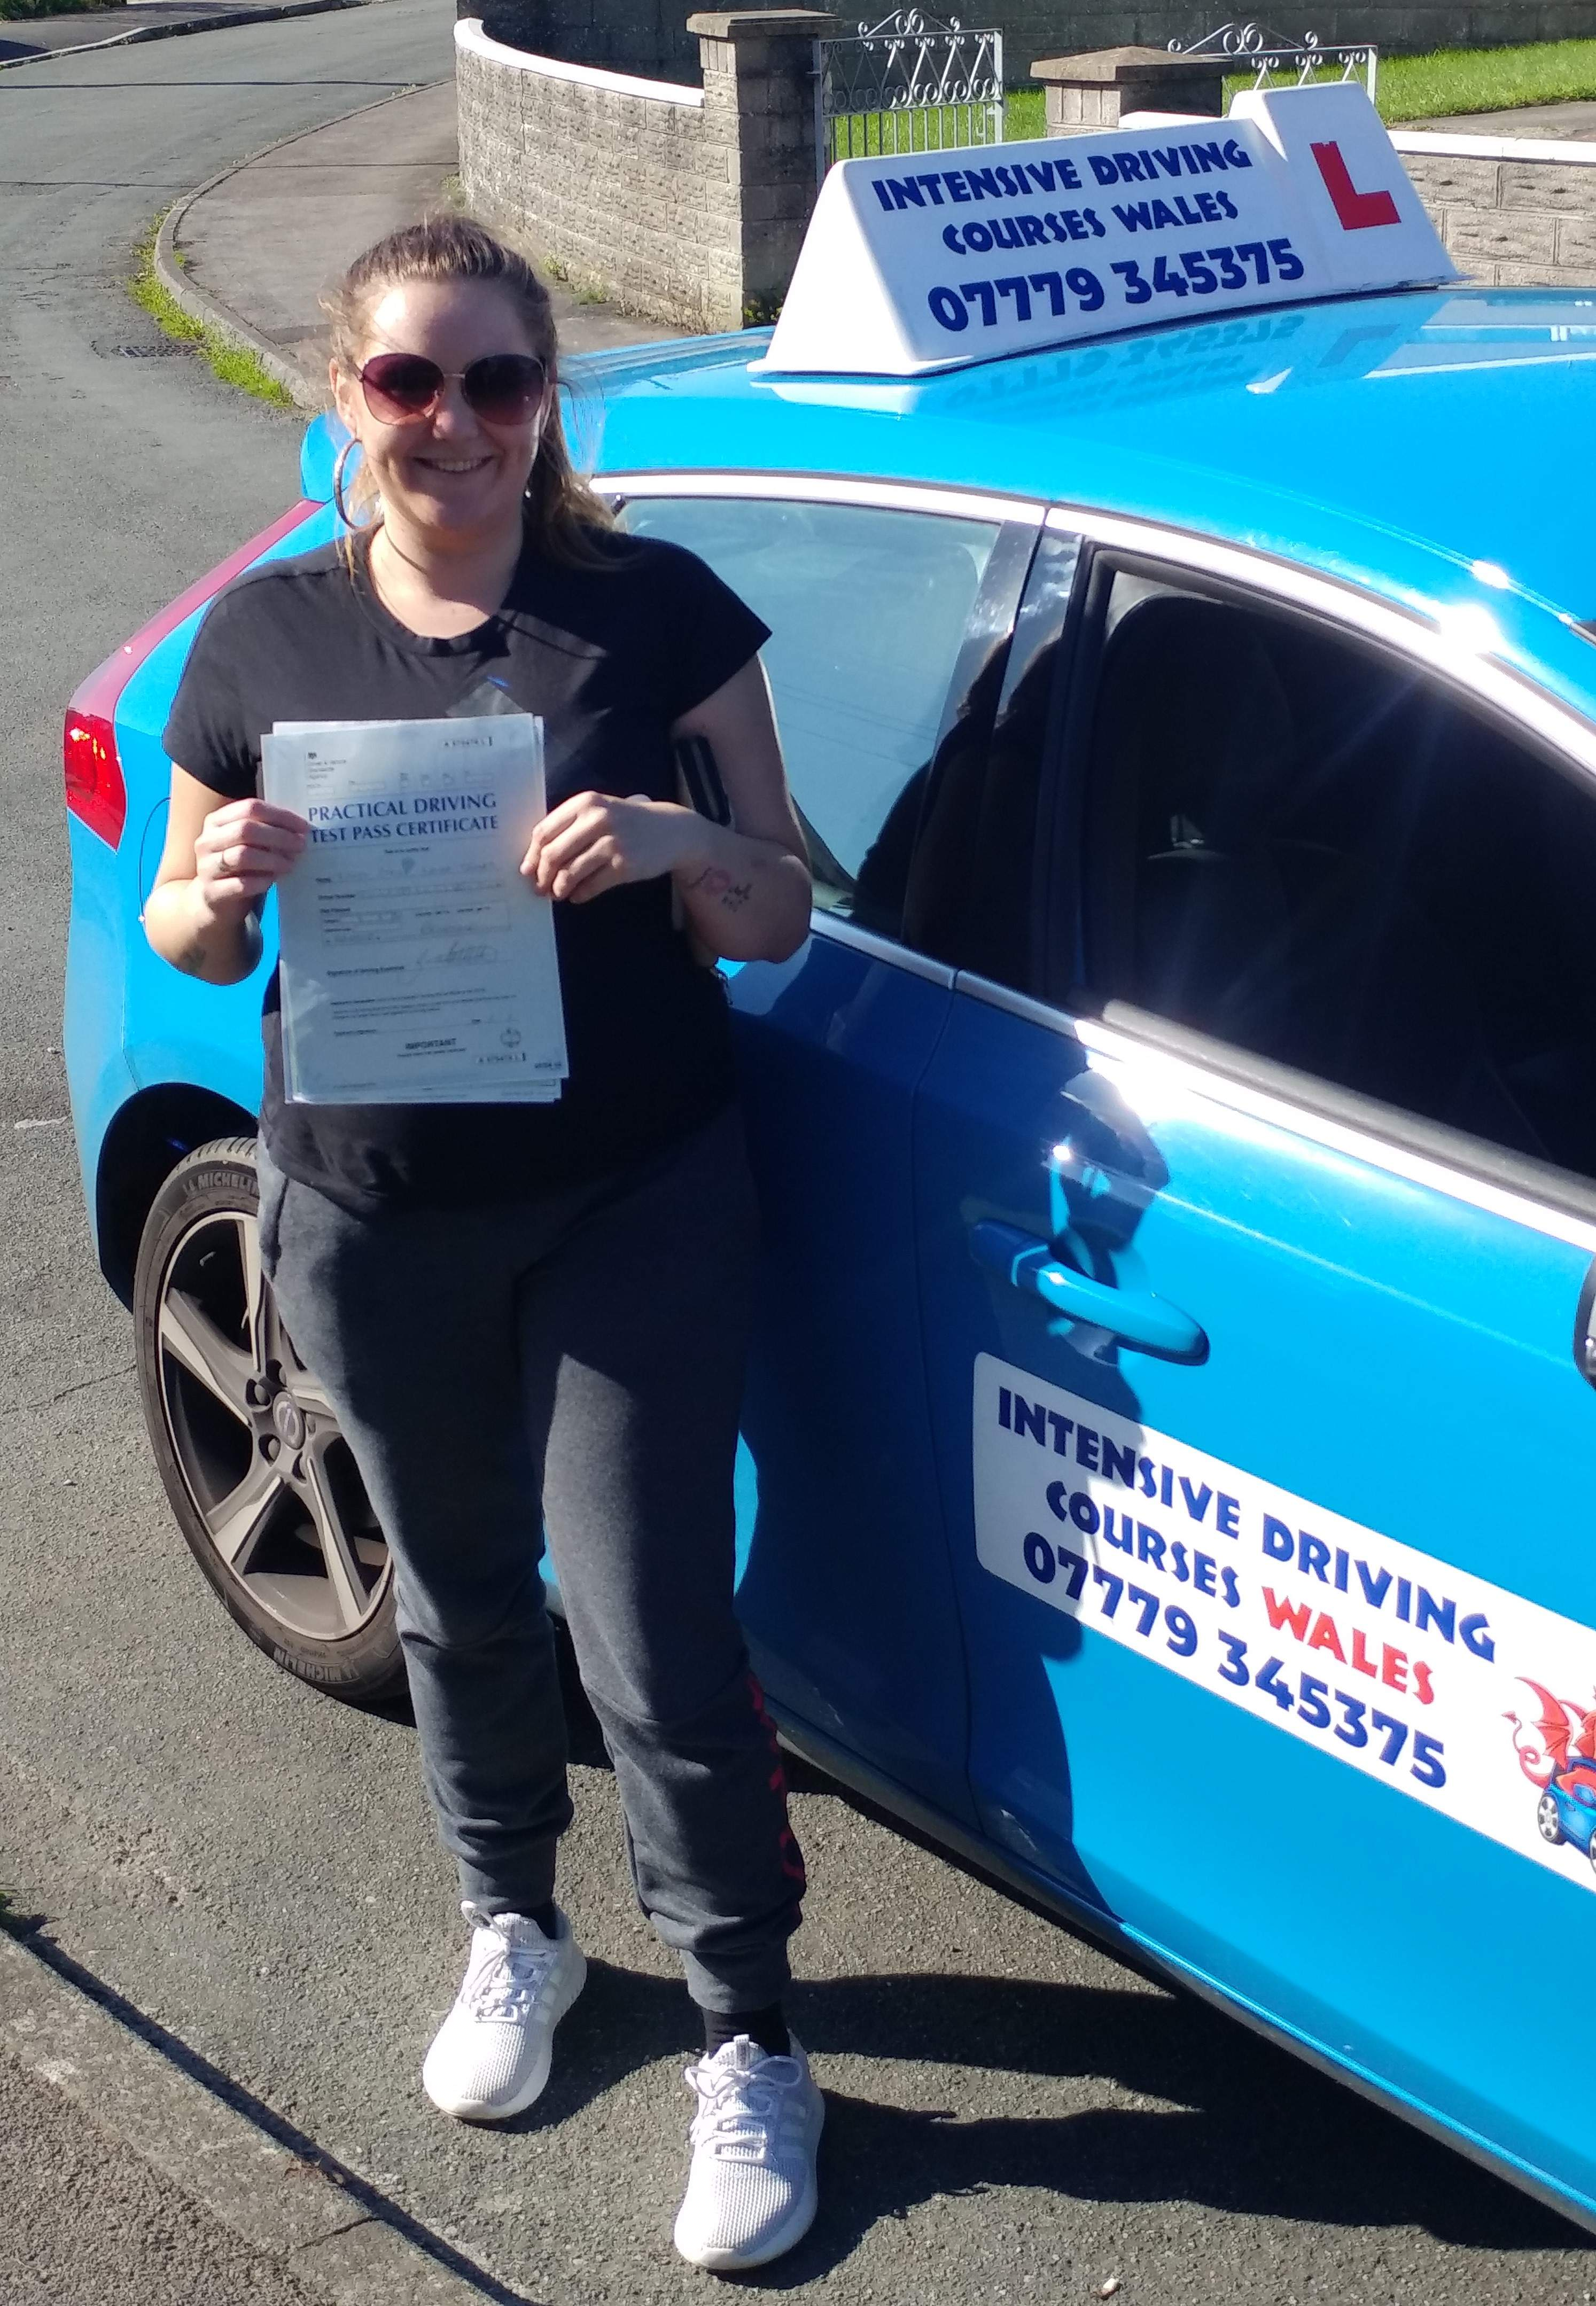 Pass your driving test in one week with an intensive driving course in bridgend